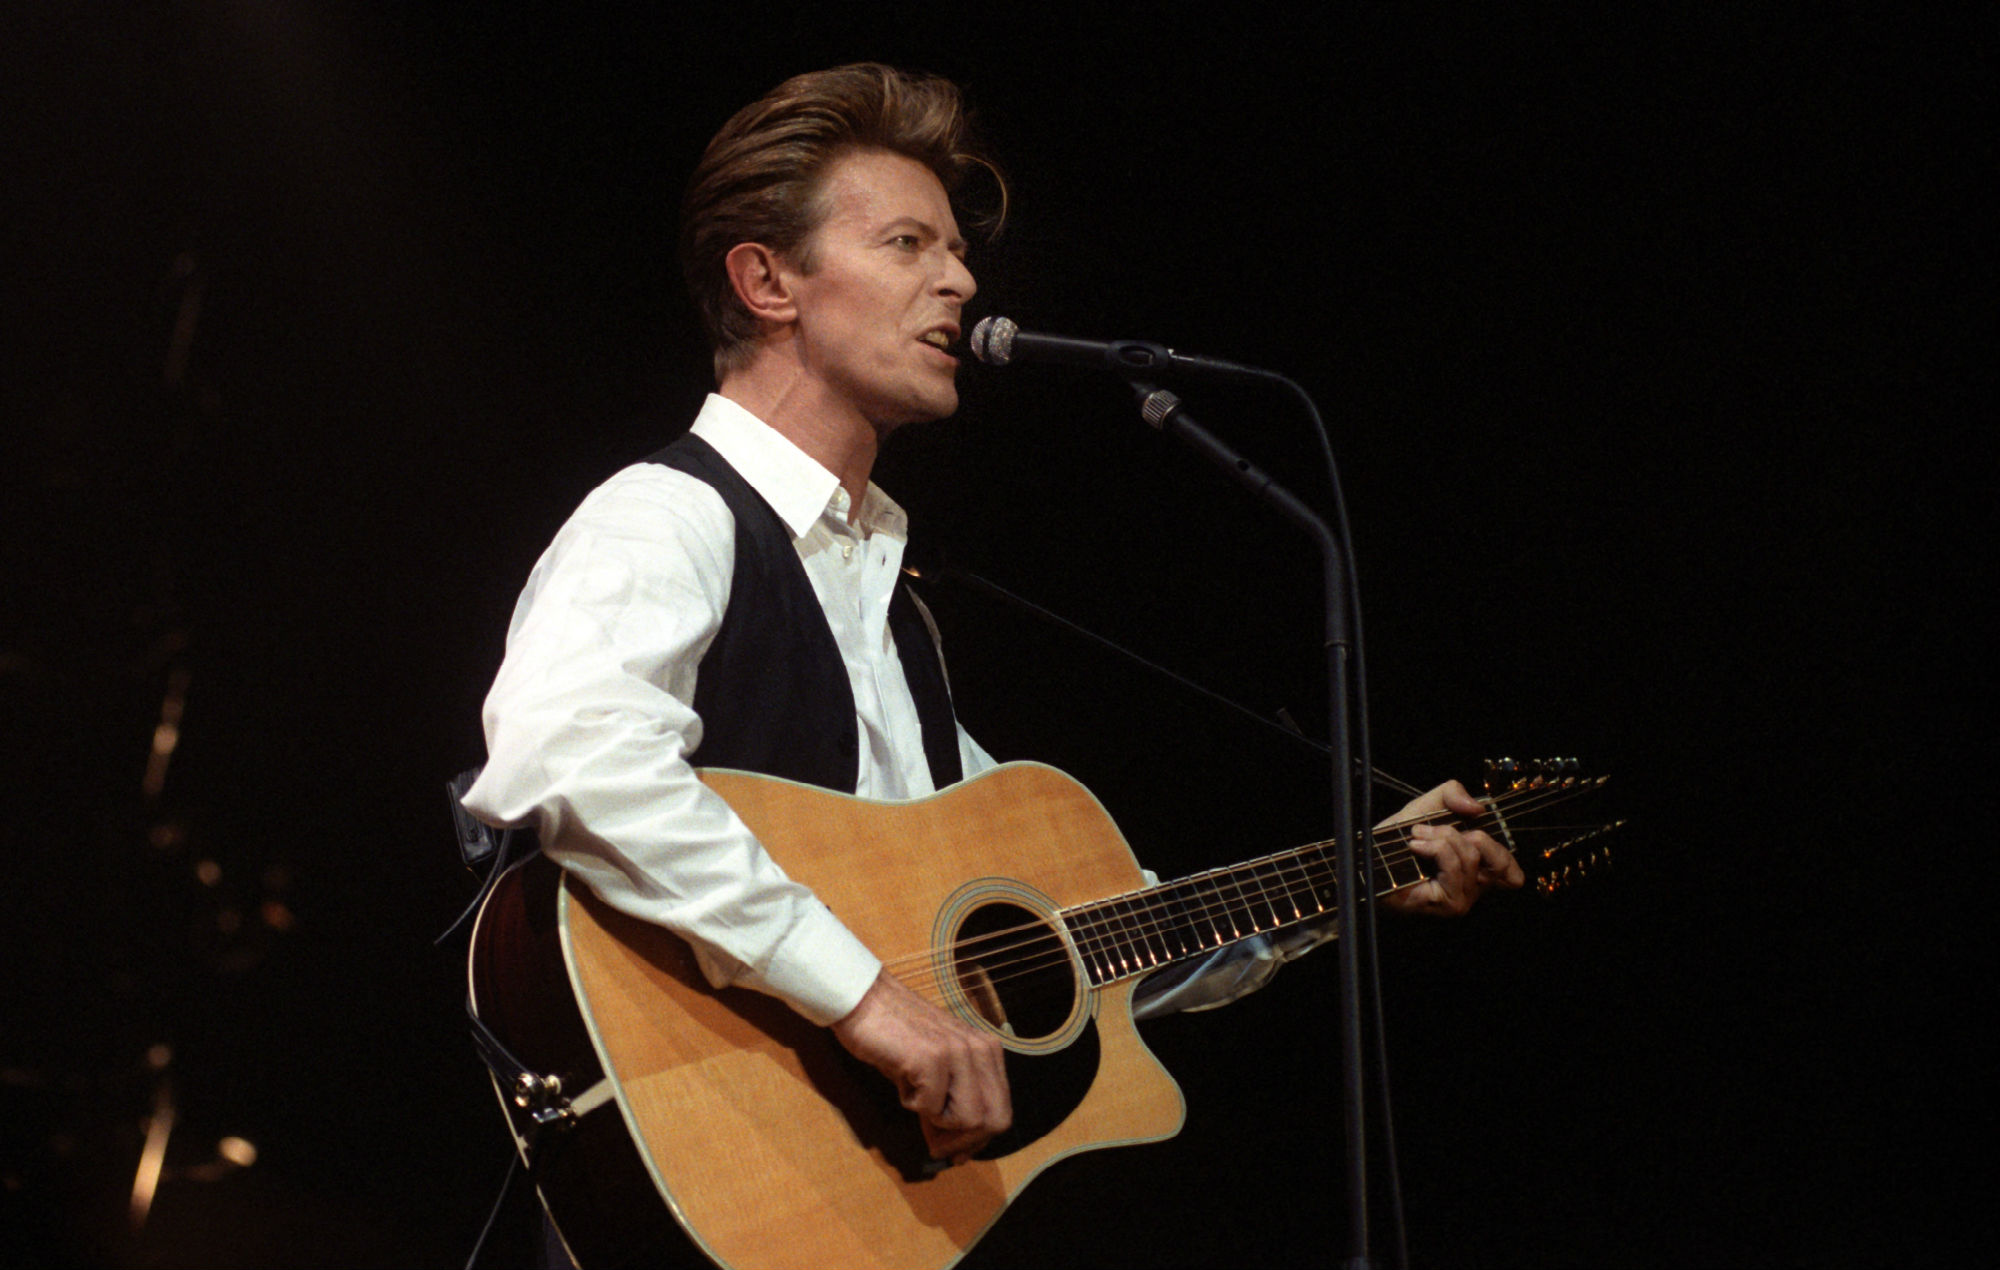 Listen to a stunning new version of David Bowie's 'Bang Bang' cover